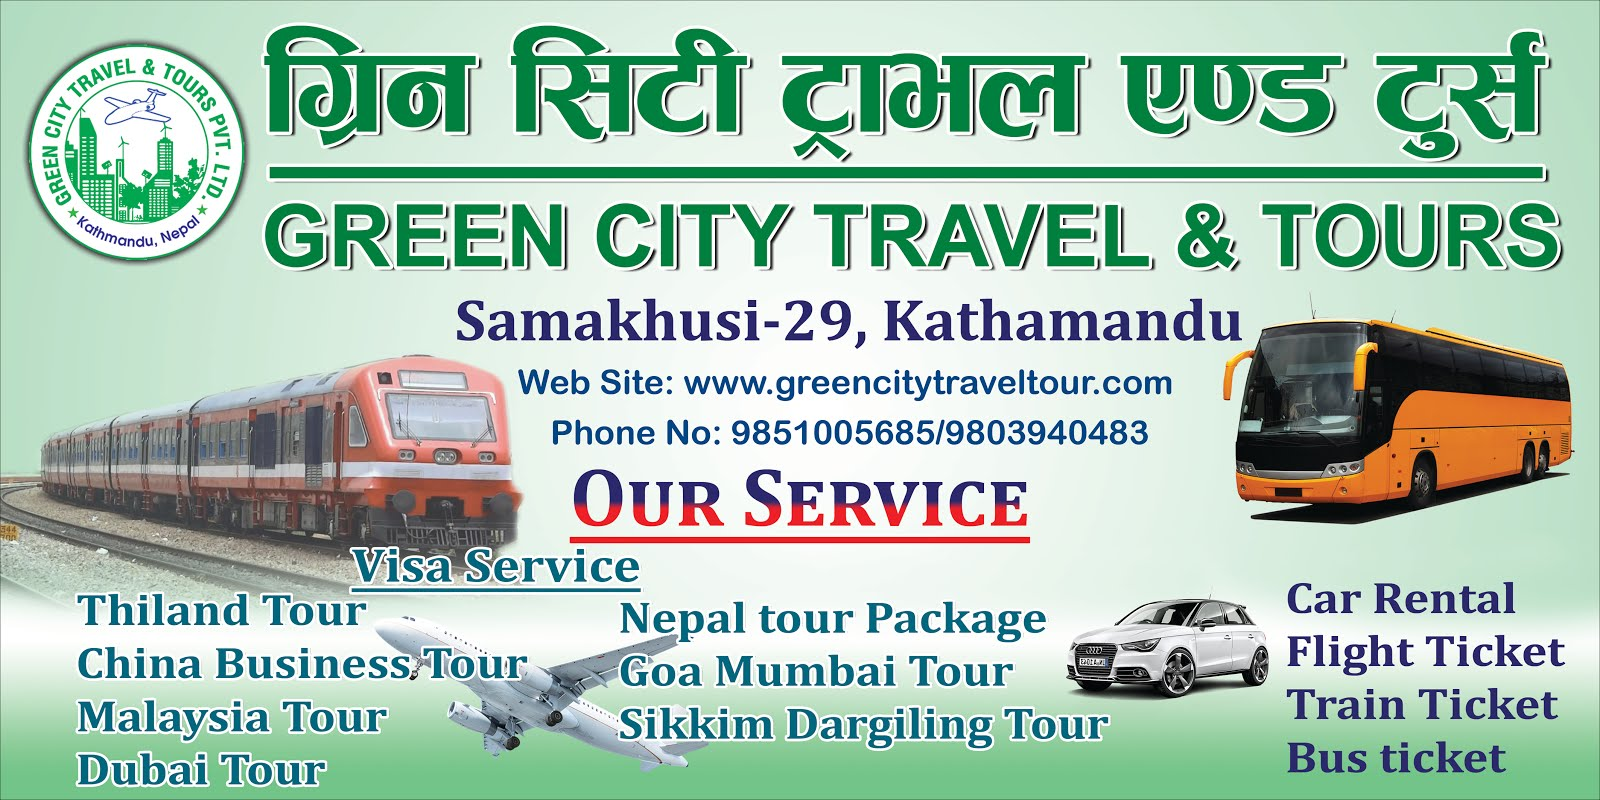 Kathmandu to delhi direct bus ticket|Kathmandu delhi bus ticket counter| Price ,distance ktm delhi